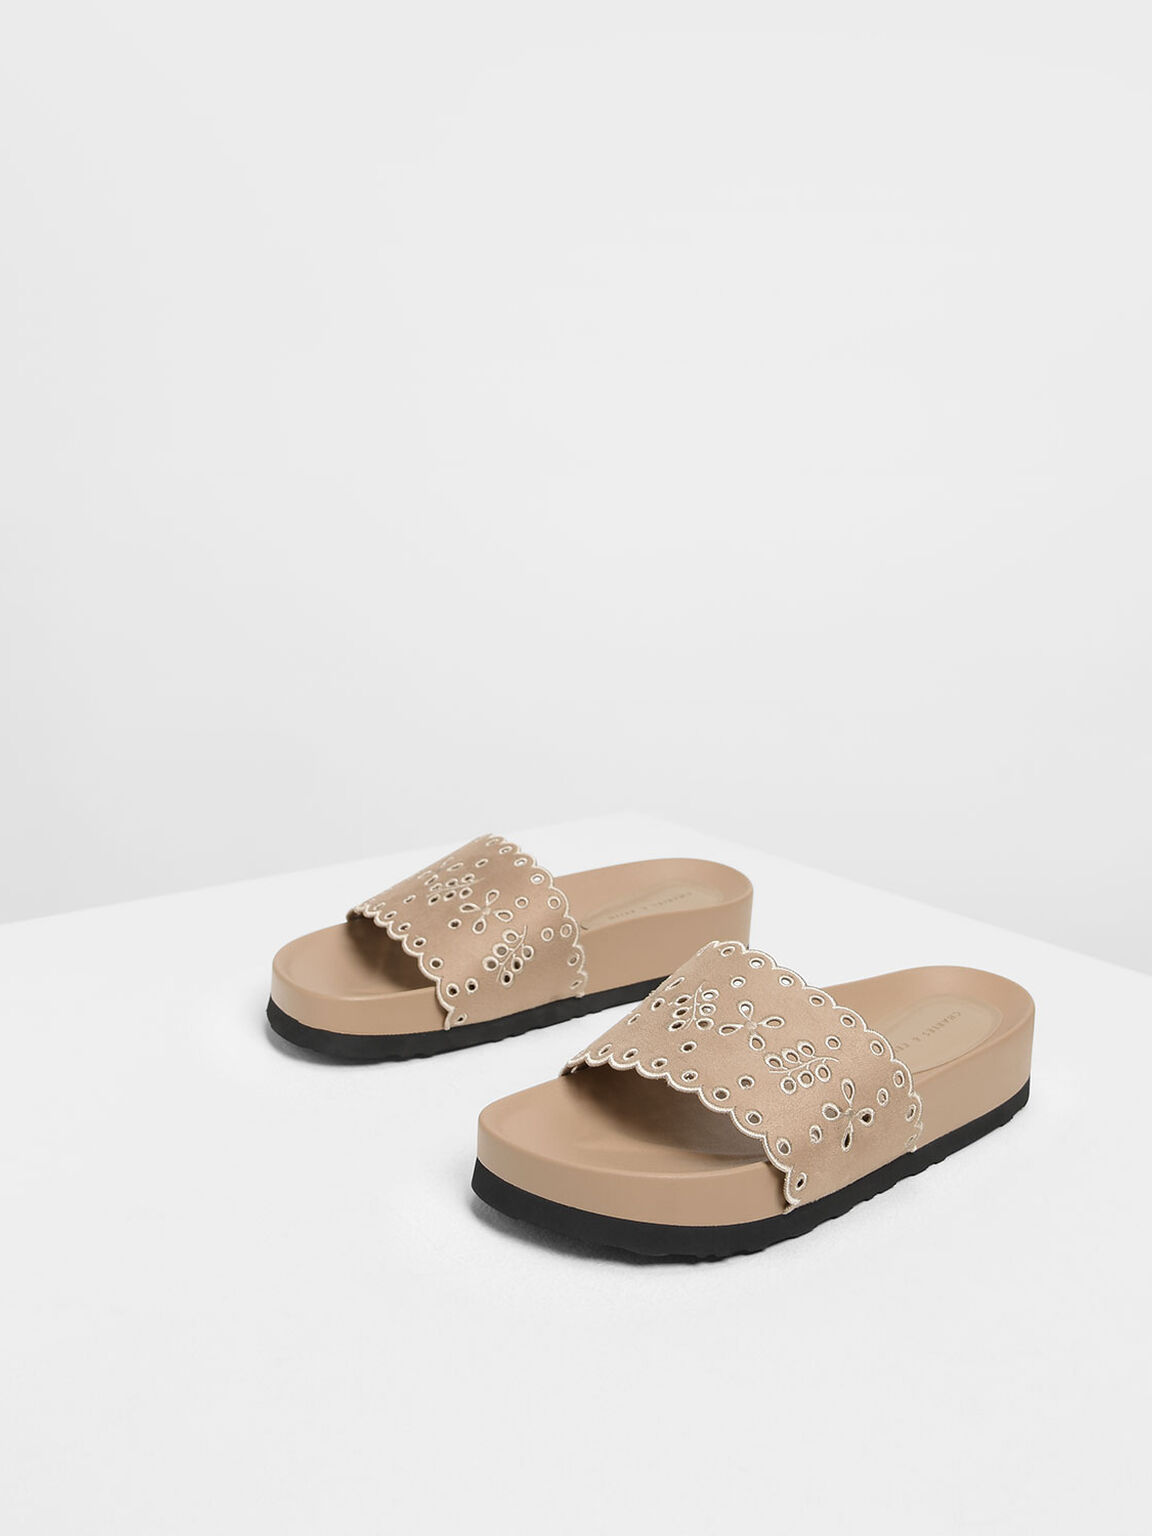 Scalloped Floral Suede Slide Sandals, Beige, hi-res